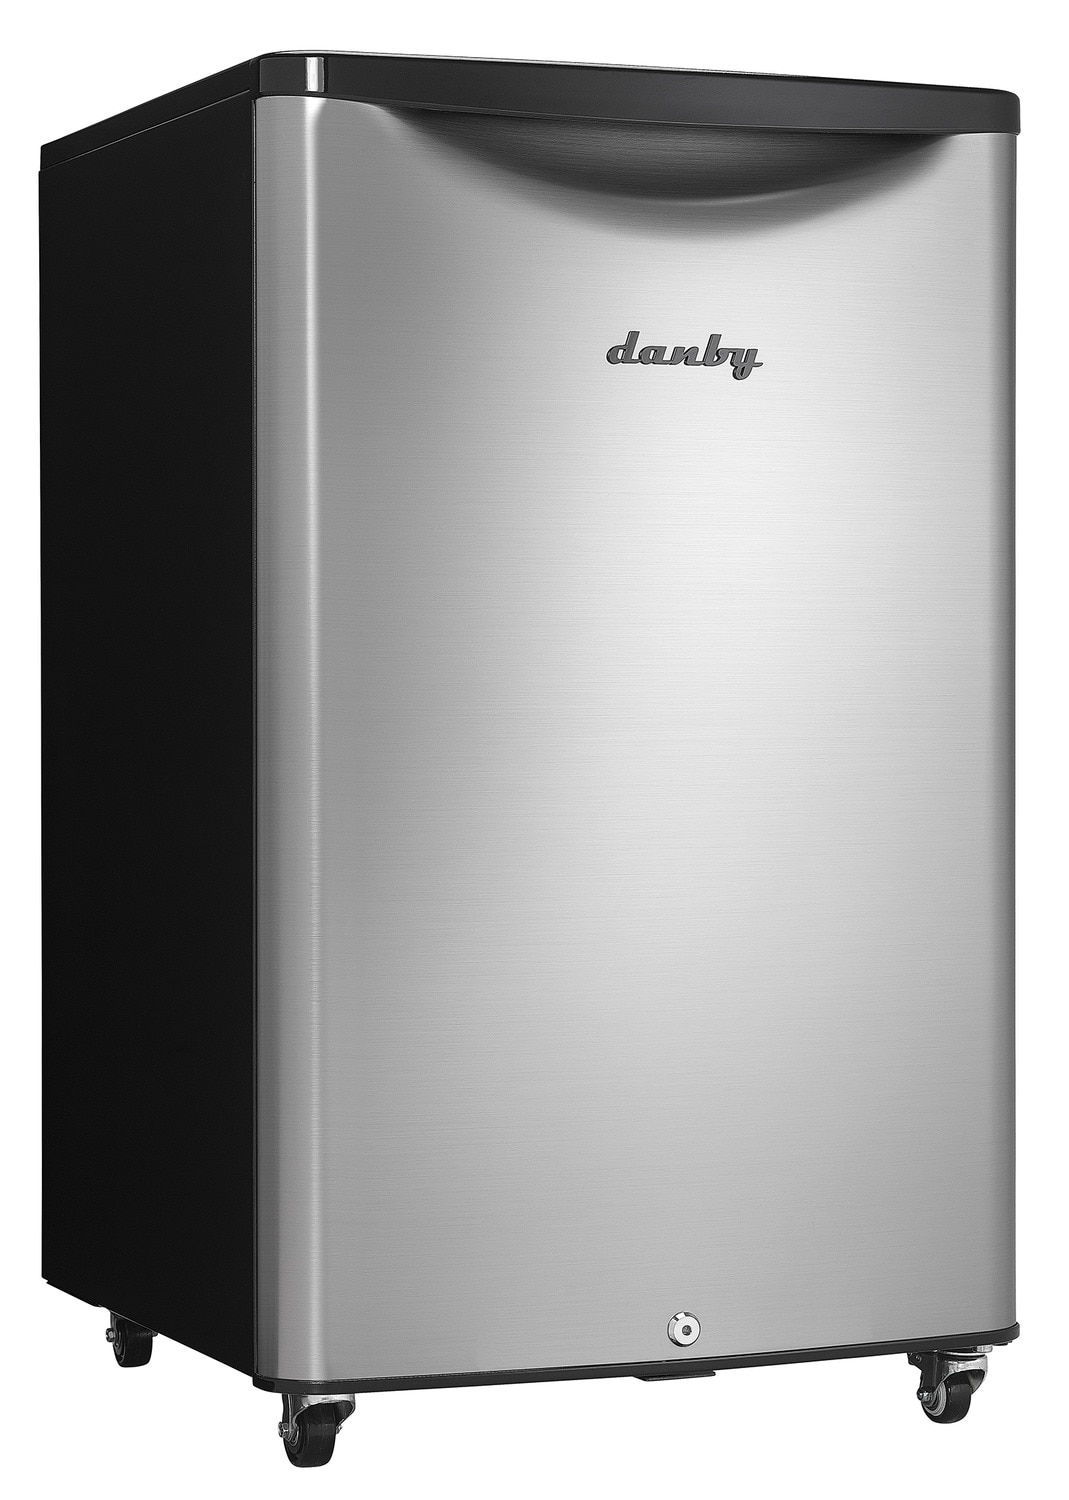 Refrigerators and Freezers - Danby Stainless Steel Outdoor Compact Refrigerator (4.4 Cu. Ft.) - DAR033A1BSLDBO